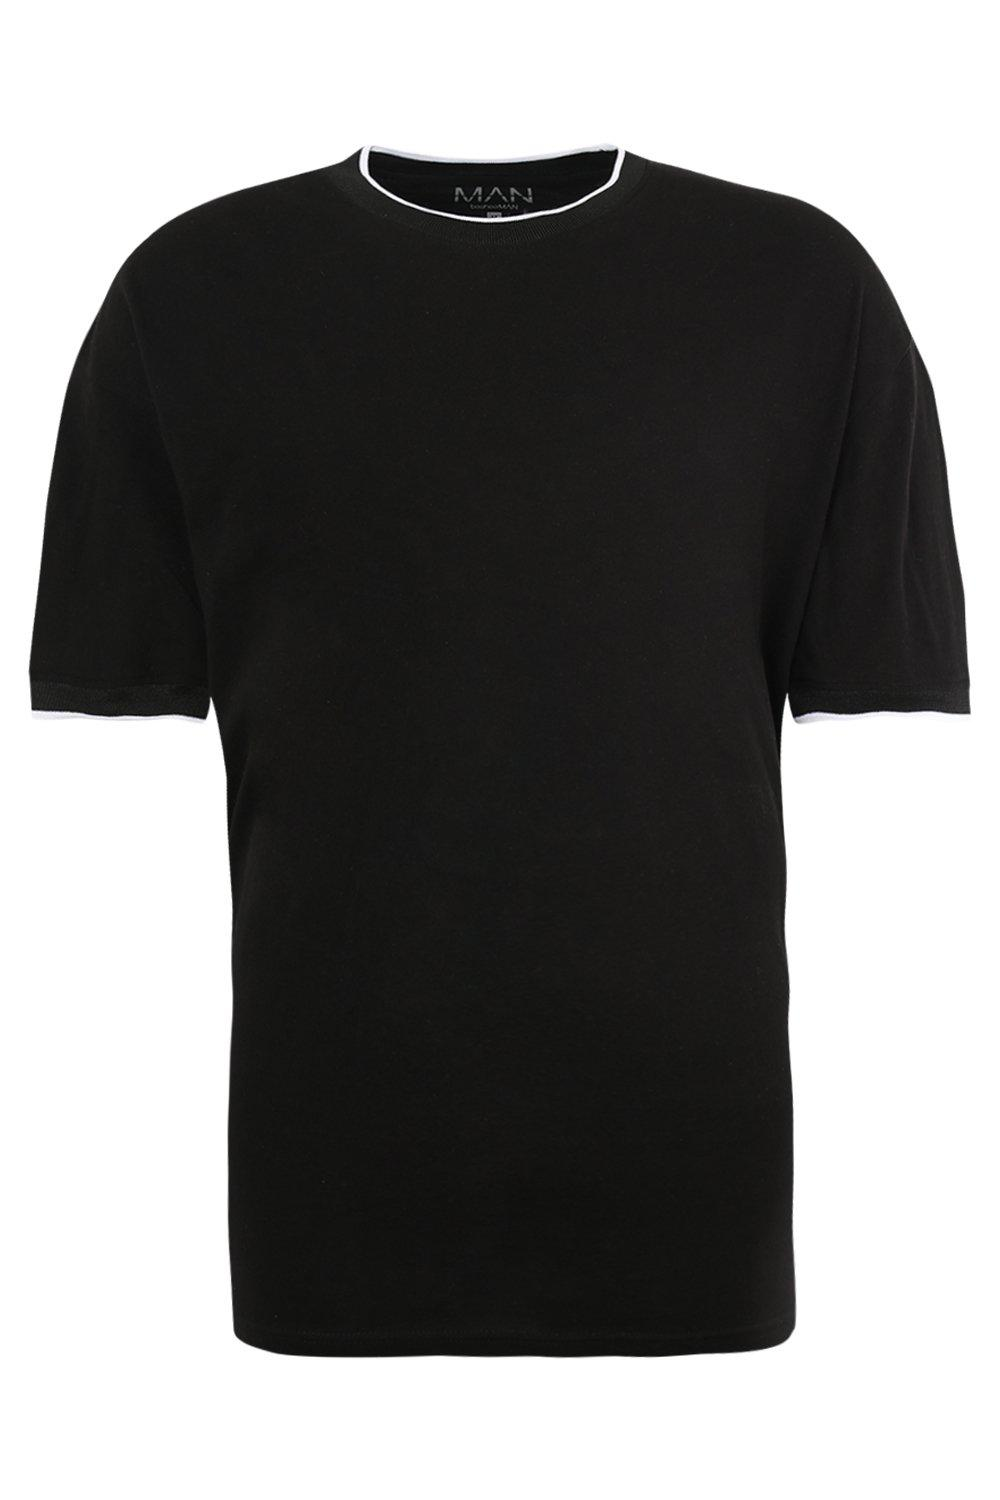 boohooMAN black Oversized T-Shirt With Sports Rib